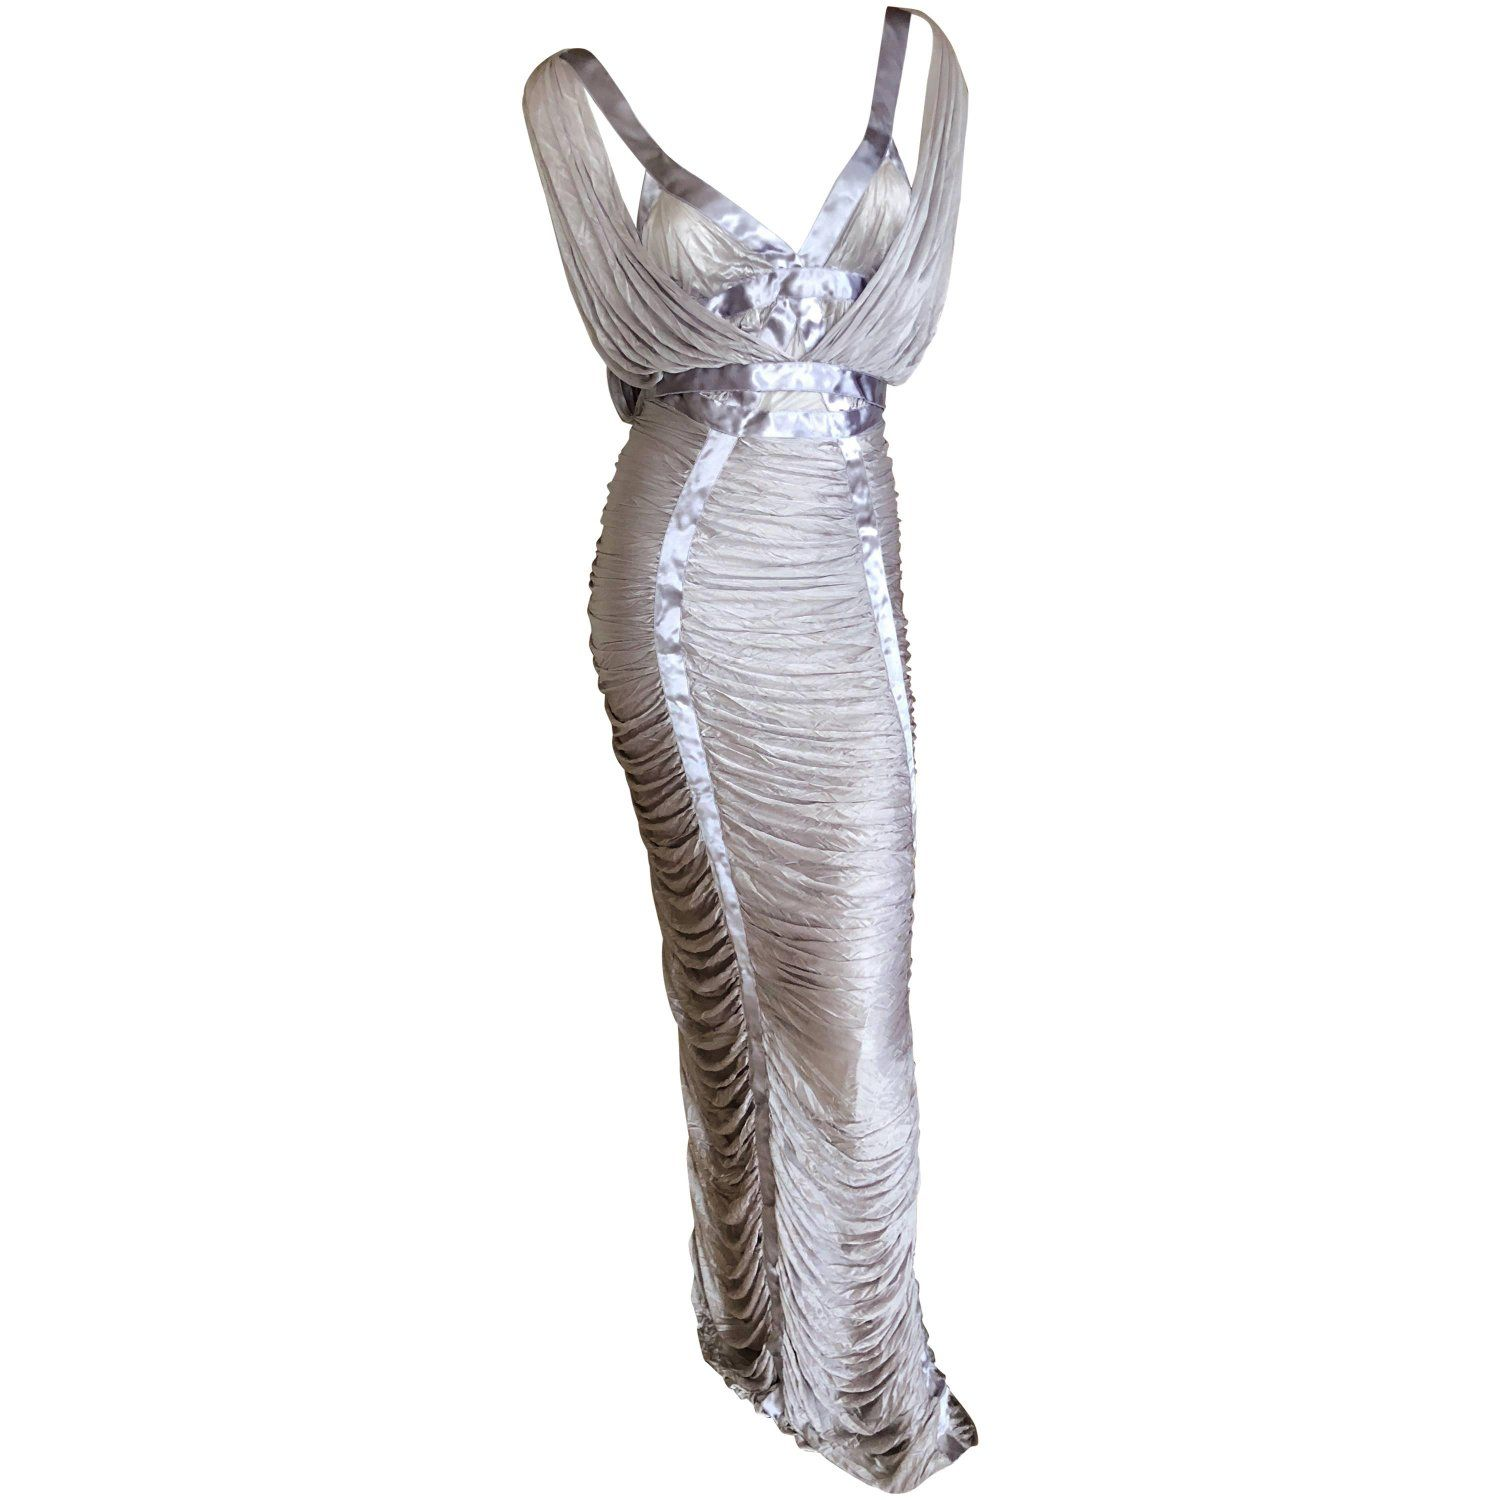 965164fe939 Yves Saint Laurent by Tom Ford Silvery Lilac Ruched Evening Dress in ...